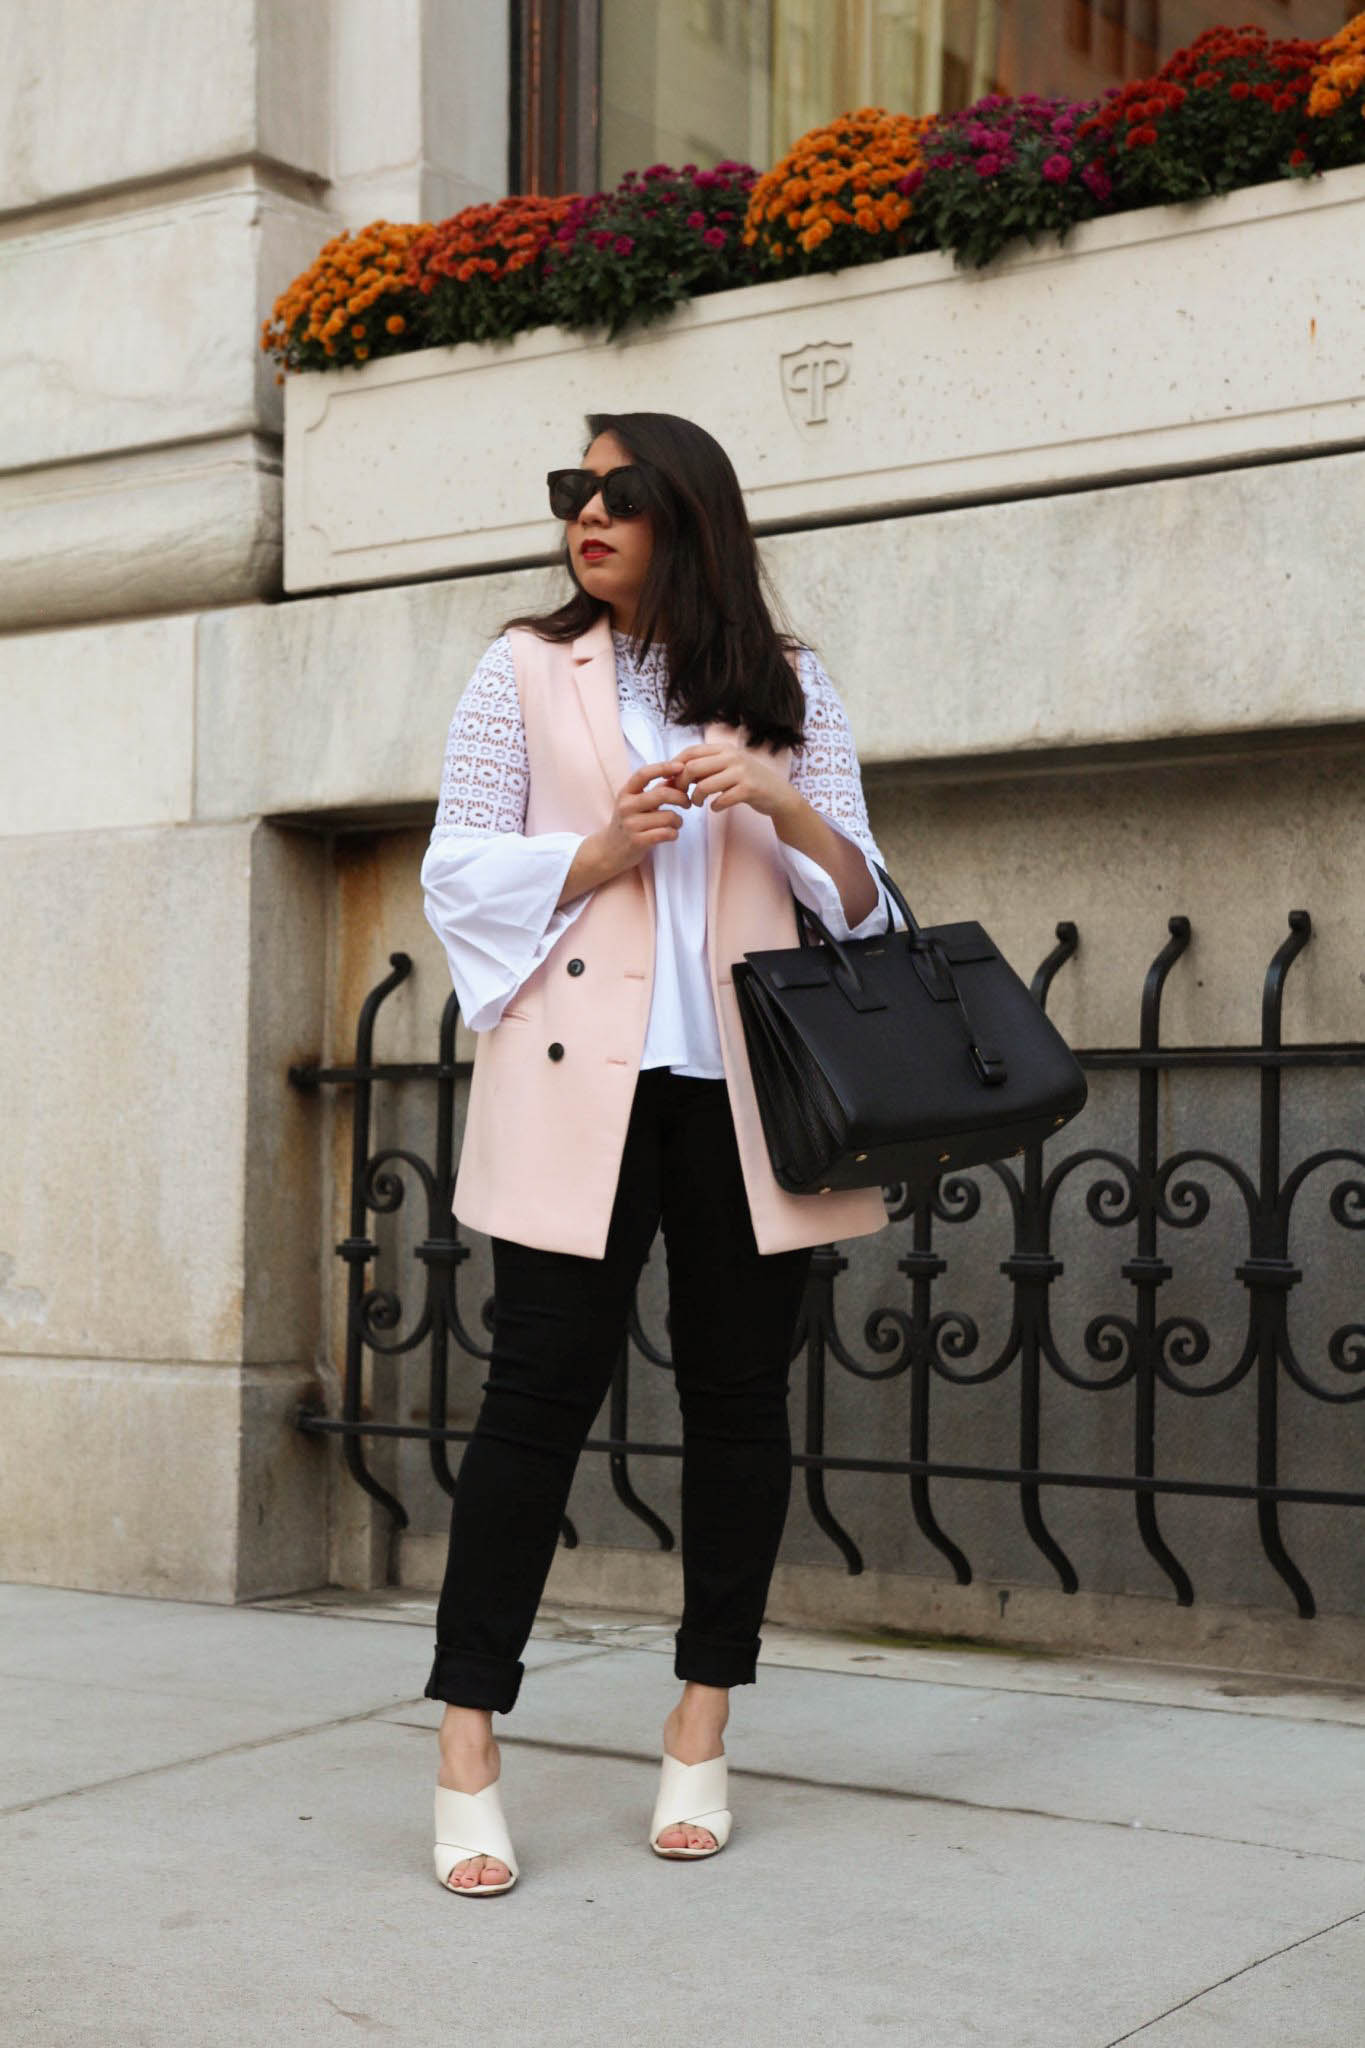 Designer Accessory Wishlist 2021 by Basically A Mess (photo of a woman outside the New York Plaza styling the Saint Laurent sac du jour)